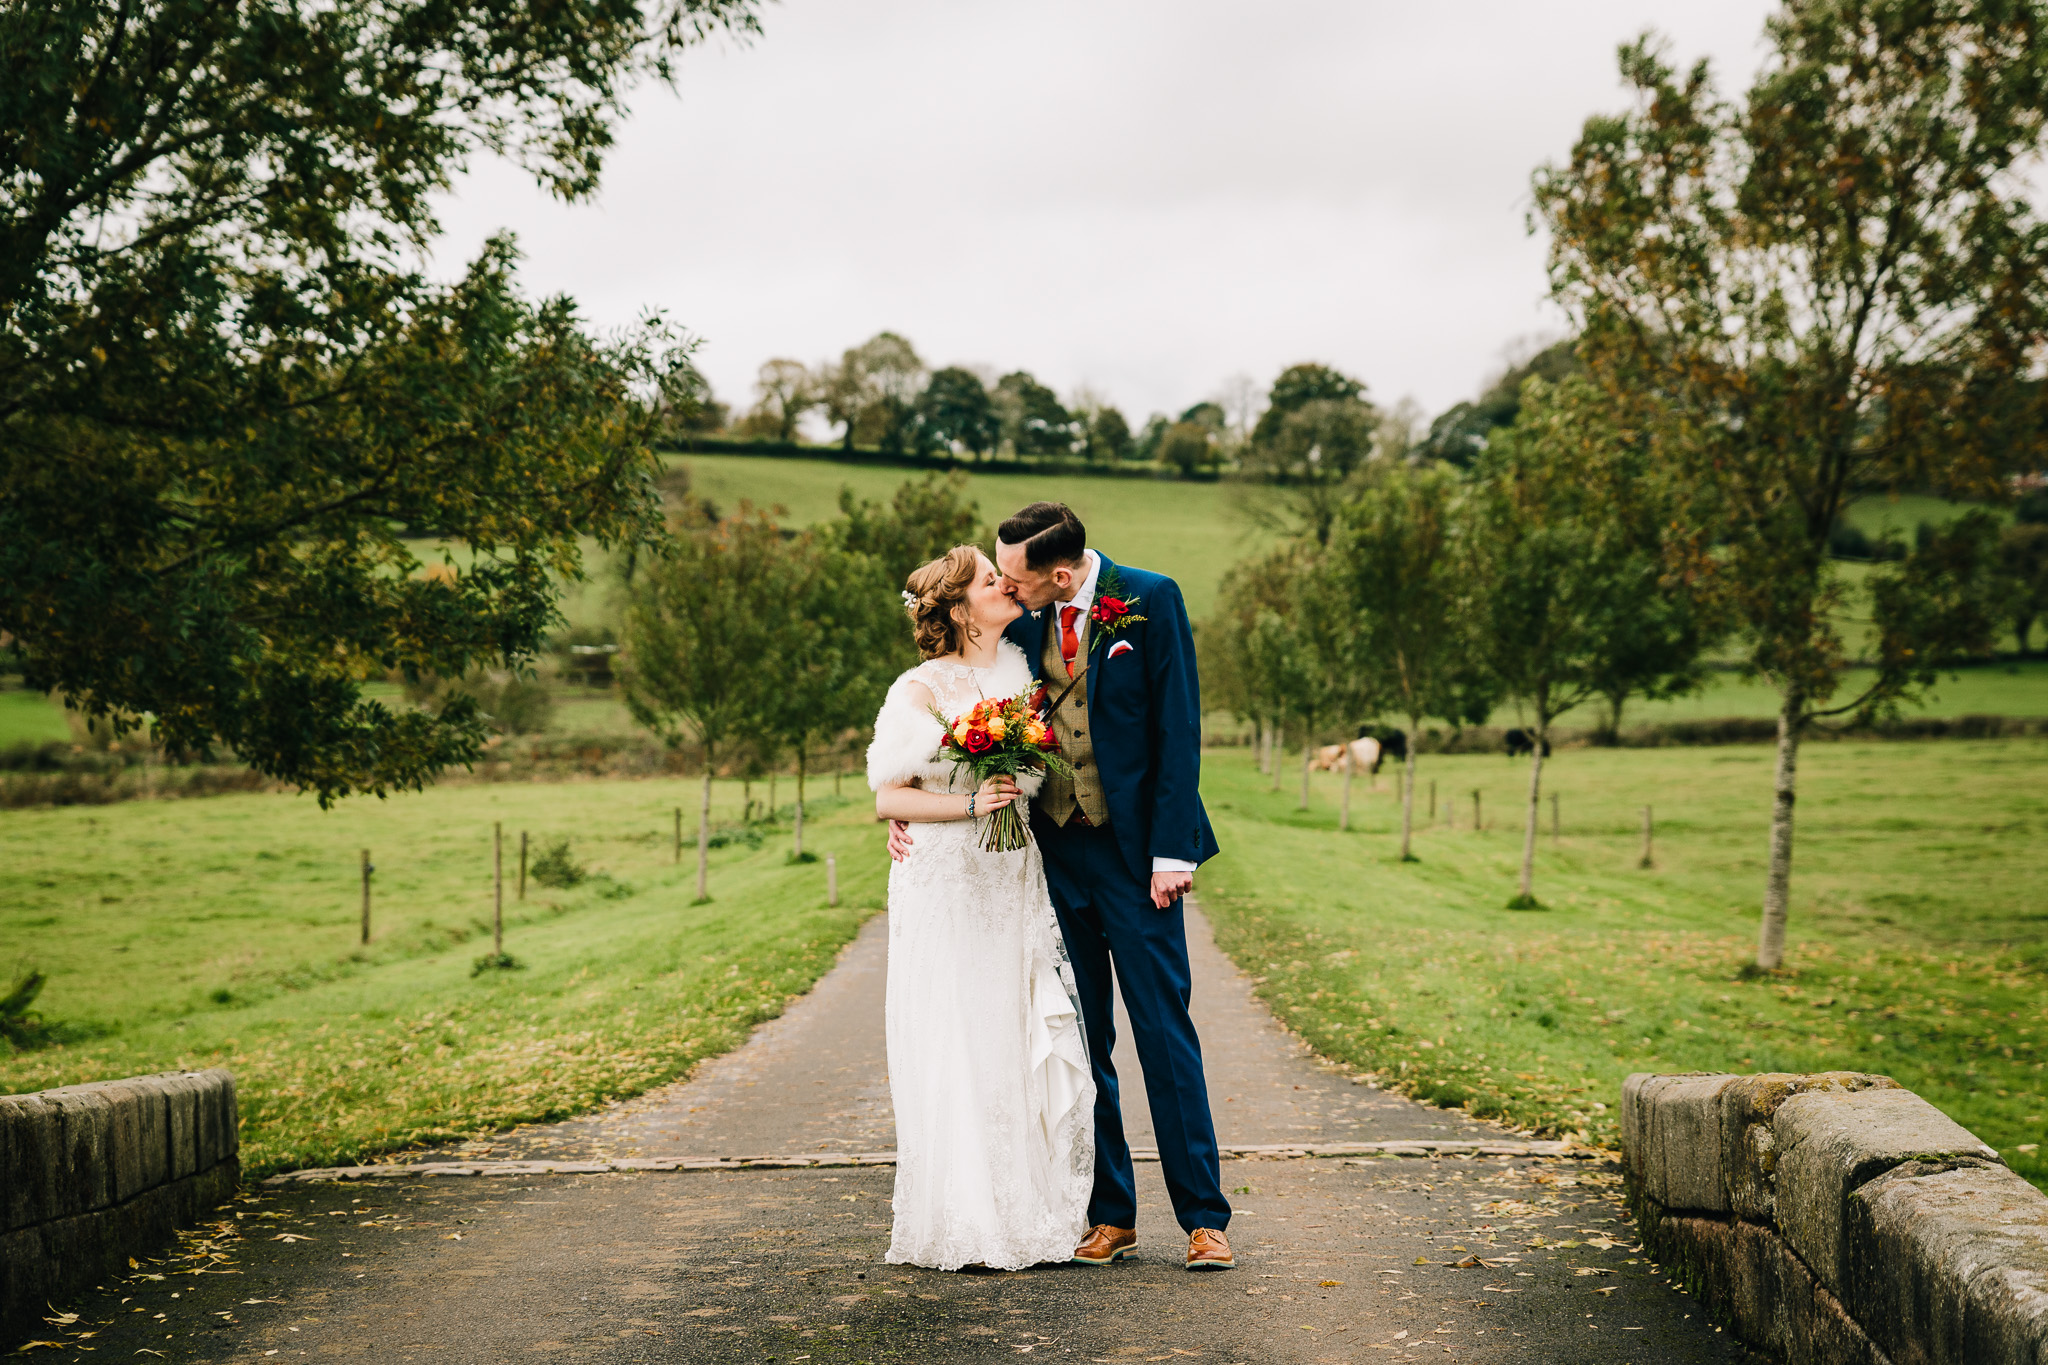 CREATIVE BRIDE AND GROOM PORTRAIT OUTDOORS